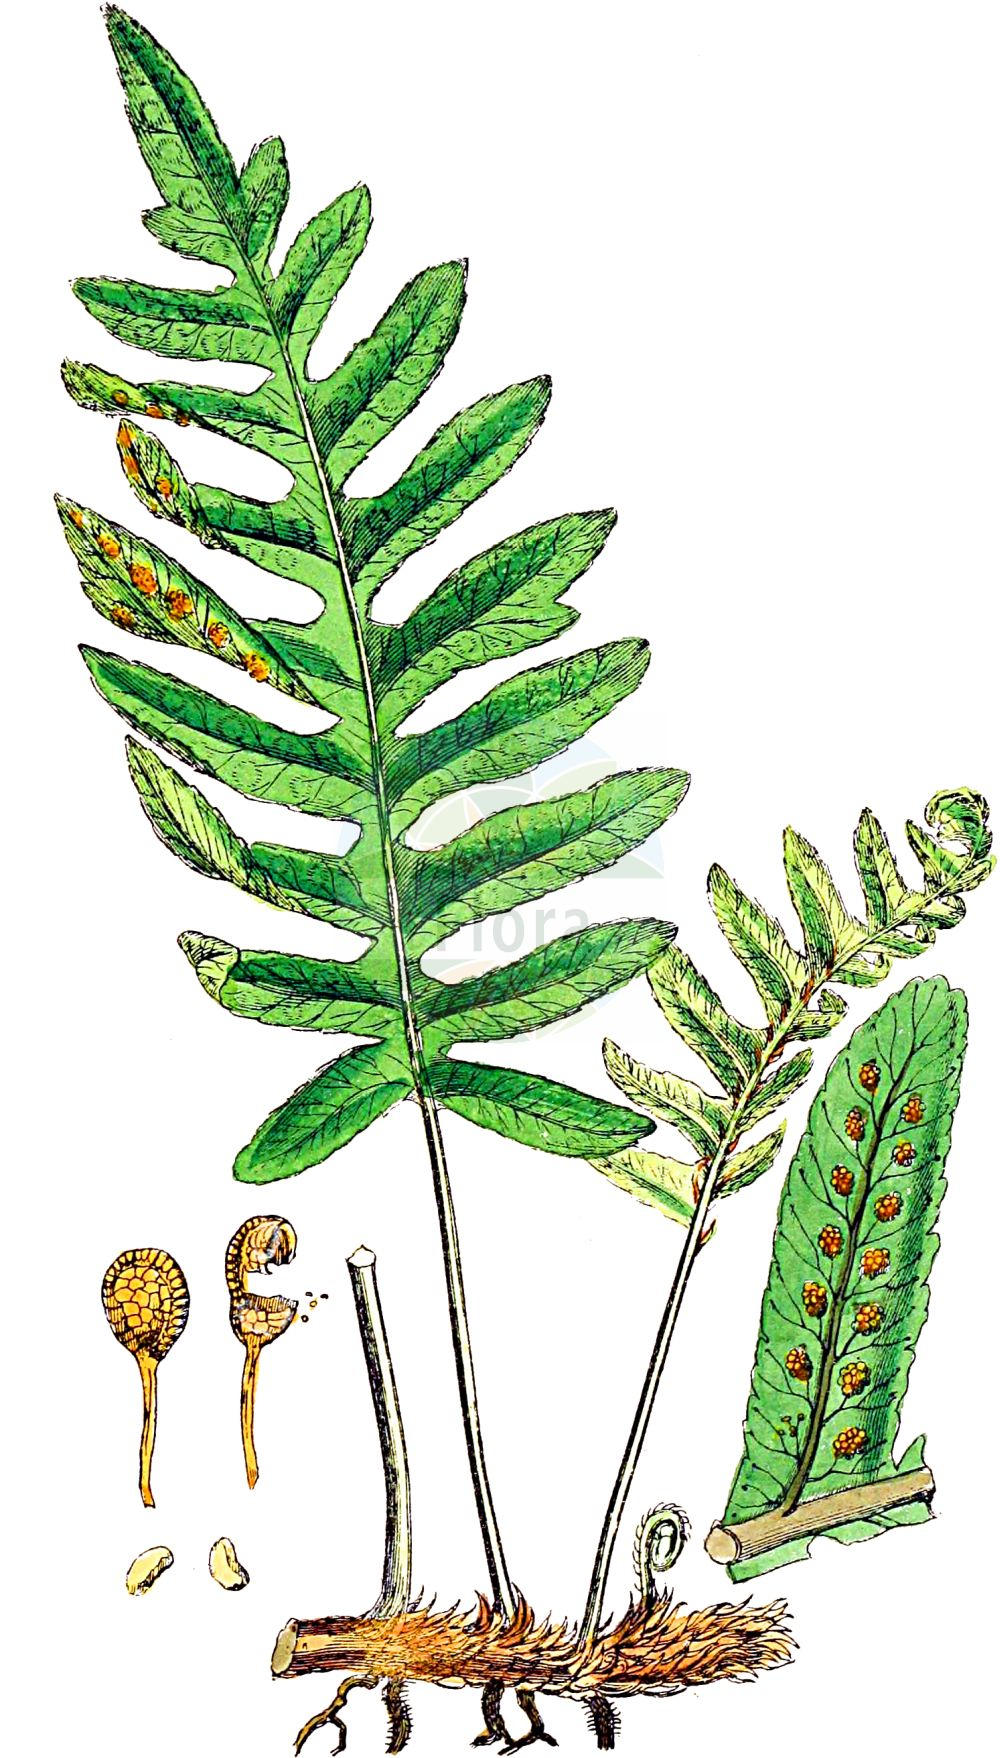 Historische Abbildung von Polypodium vulgare agg. (Tuepfelfarn - Polypodies). Das Bild zeigt Blatt, Bluete, Frucht und Same. ---- Historical Drawing of Polypodium vulgare agg. (Tuepfelfarn - Polypodies).The image is showing leaf, flower, fruit and seed.(Polypodium vulgare agg.,Tuepfelfarn,Polypodies,Tuepfelfarn,Tuepfelfarn,Engelsuess,Gewoehnlicher Tuepfelfarn,Mantons Tuepfelfarn,Polypodies,Common Polypody,Adder's Fern,Polypody,Wall Fern,Polypodium,Tuepfelfarn,Polypodies,Polypodiaceae,Tuepfelfarngewaechse,Polypody family,Blatt,Bluete,Frucht,Same,leaf,flower,fruit,seed,Sowerby (1790-1813))